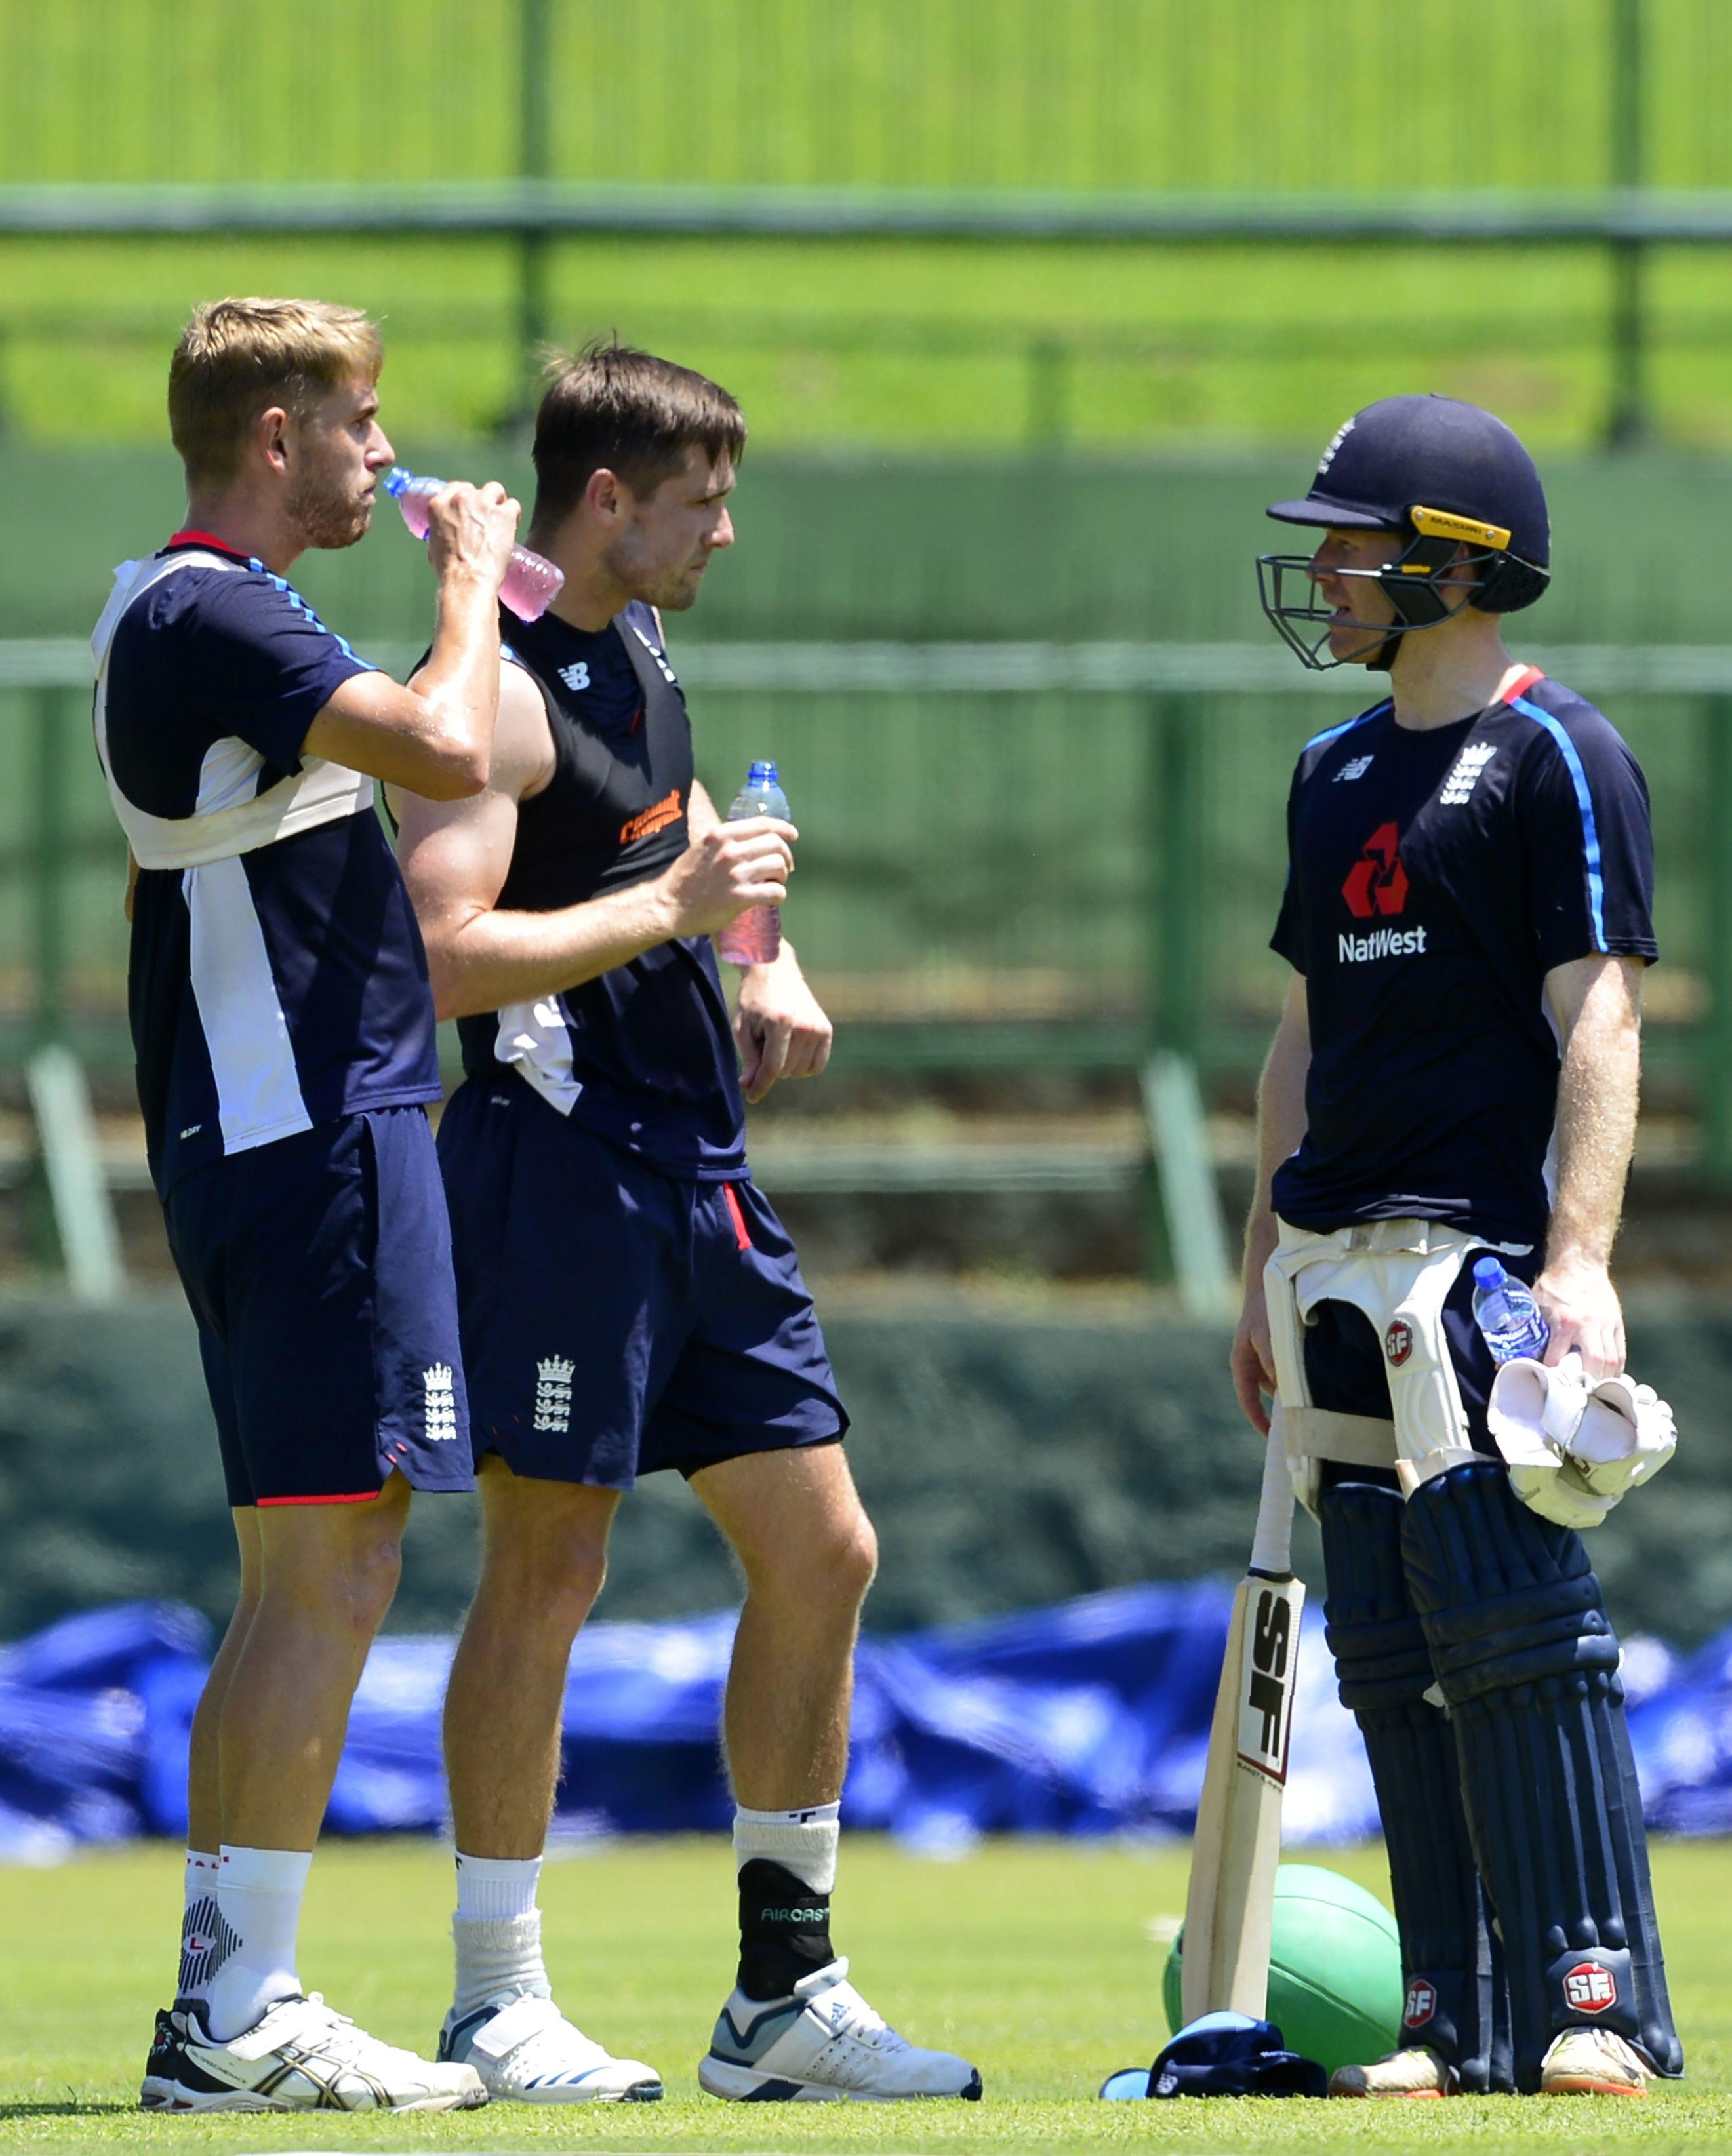 England take on Sri Lanka in the next one-dayer in Kandy on Wednesday